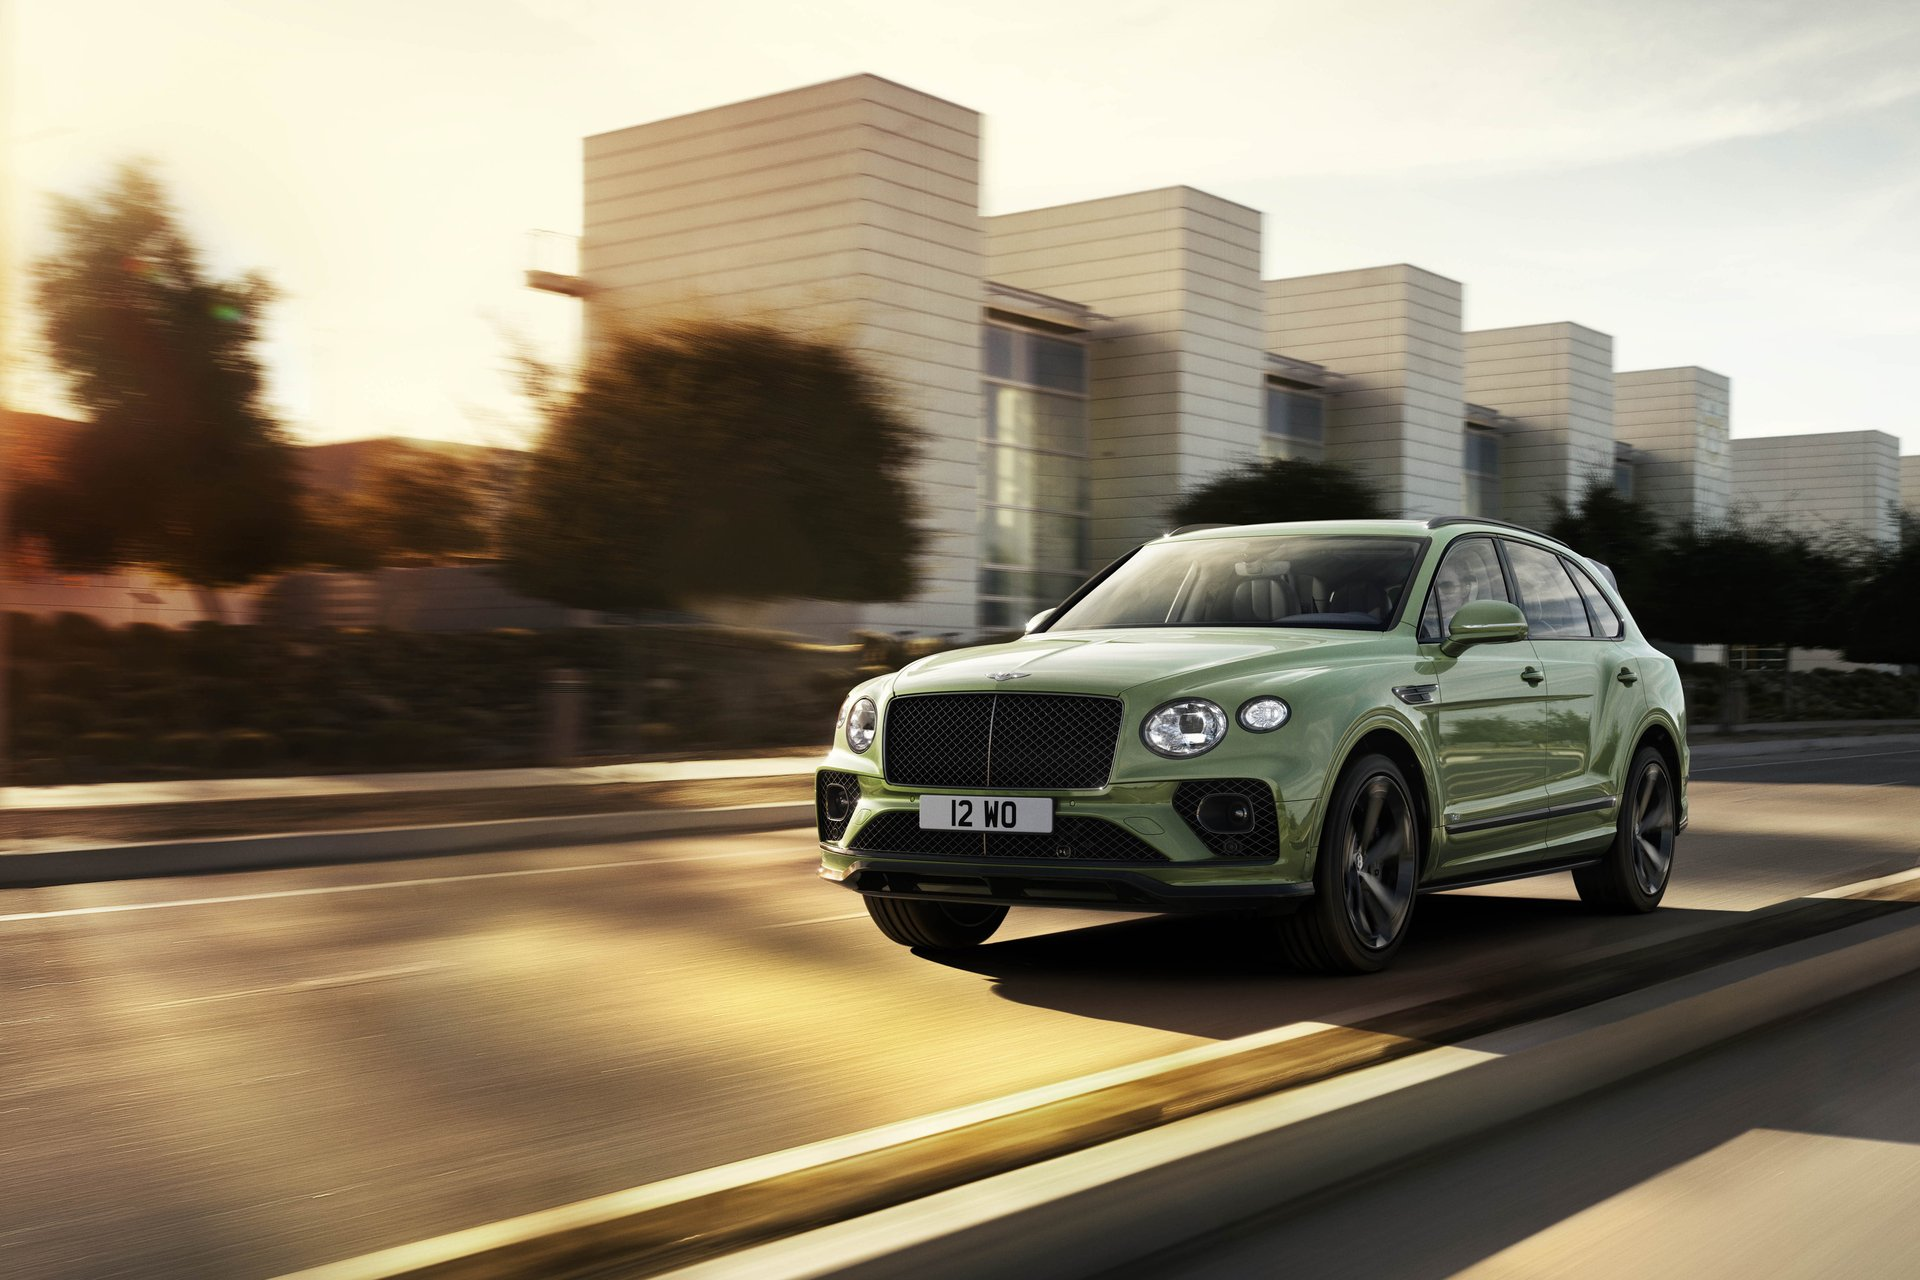 New Bentley Bentayga The Definitive Luxury Suv Watch I Love